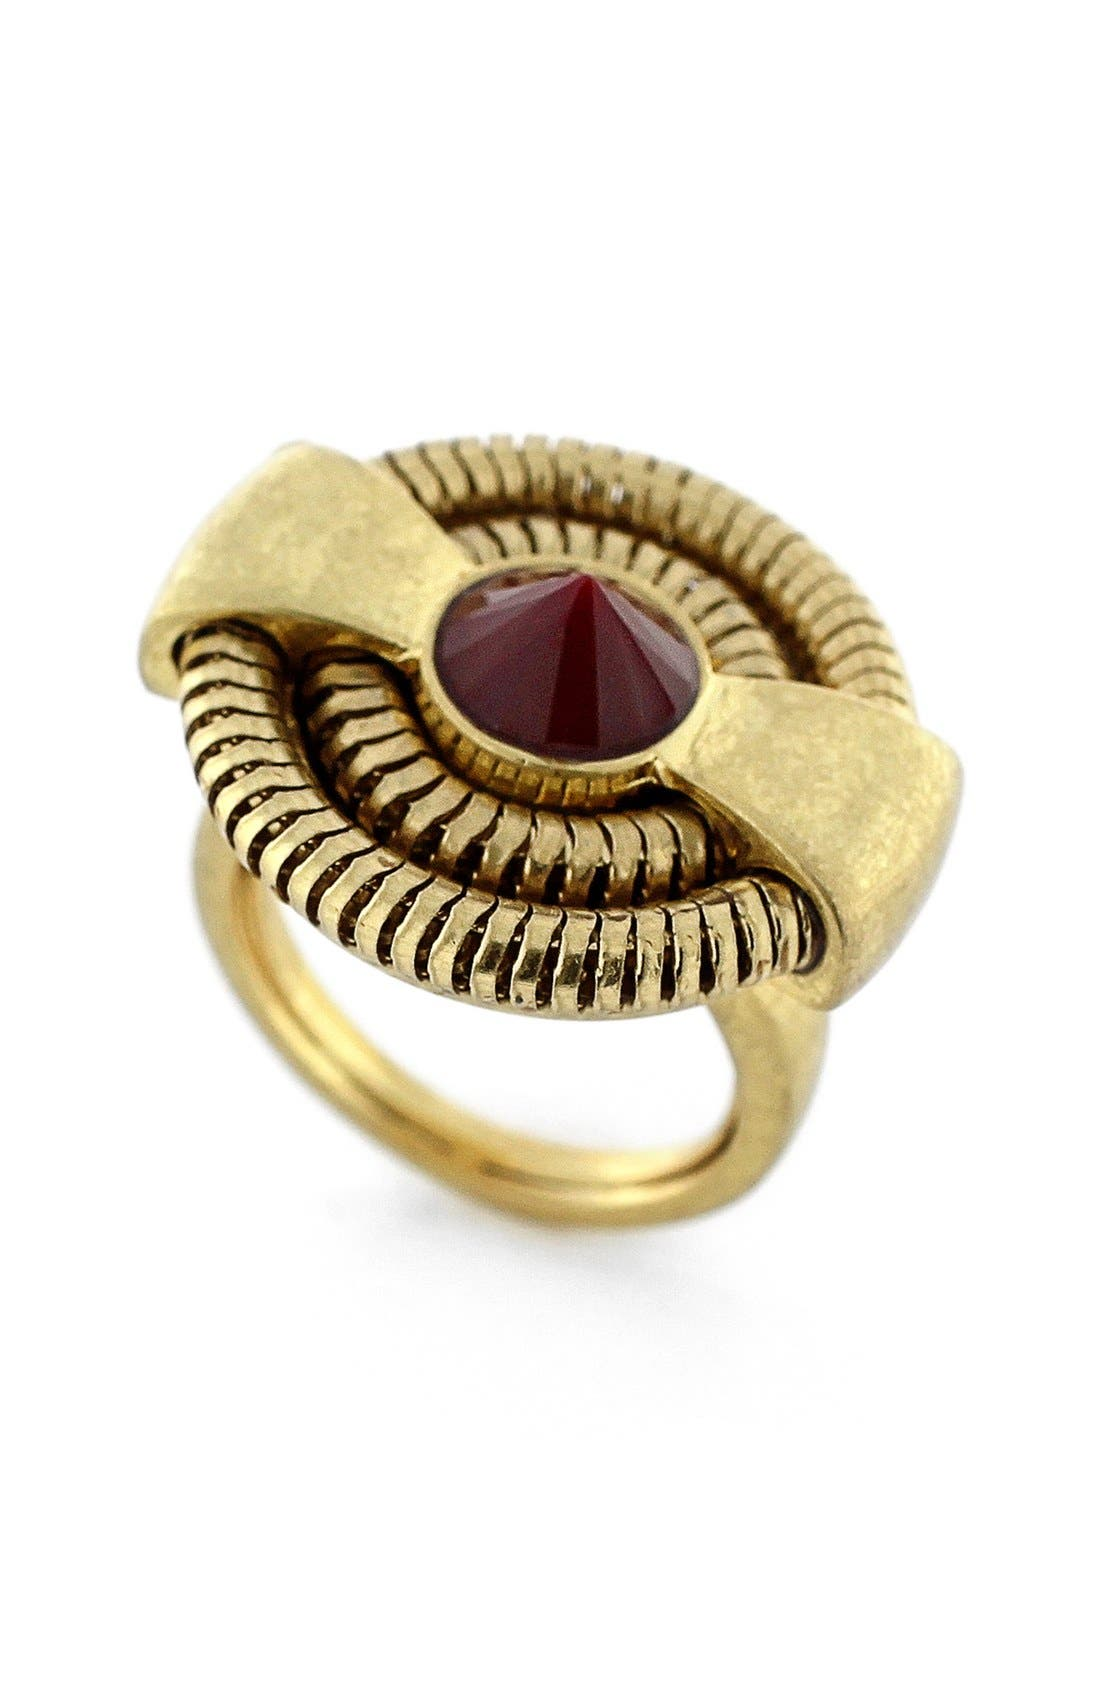 Alternate Image 1 Selected - Vince Camuto 'Belle of the Bazaar' Small Statement Ring